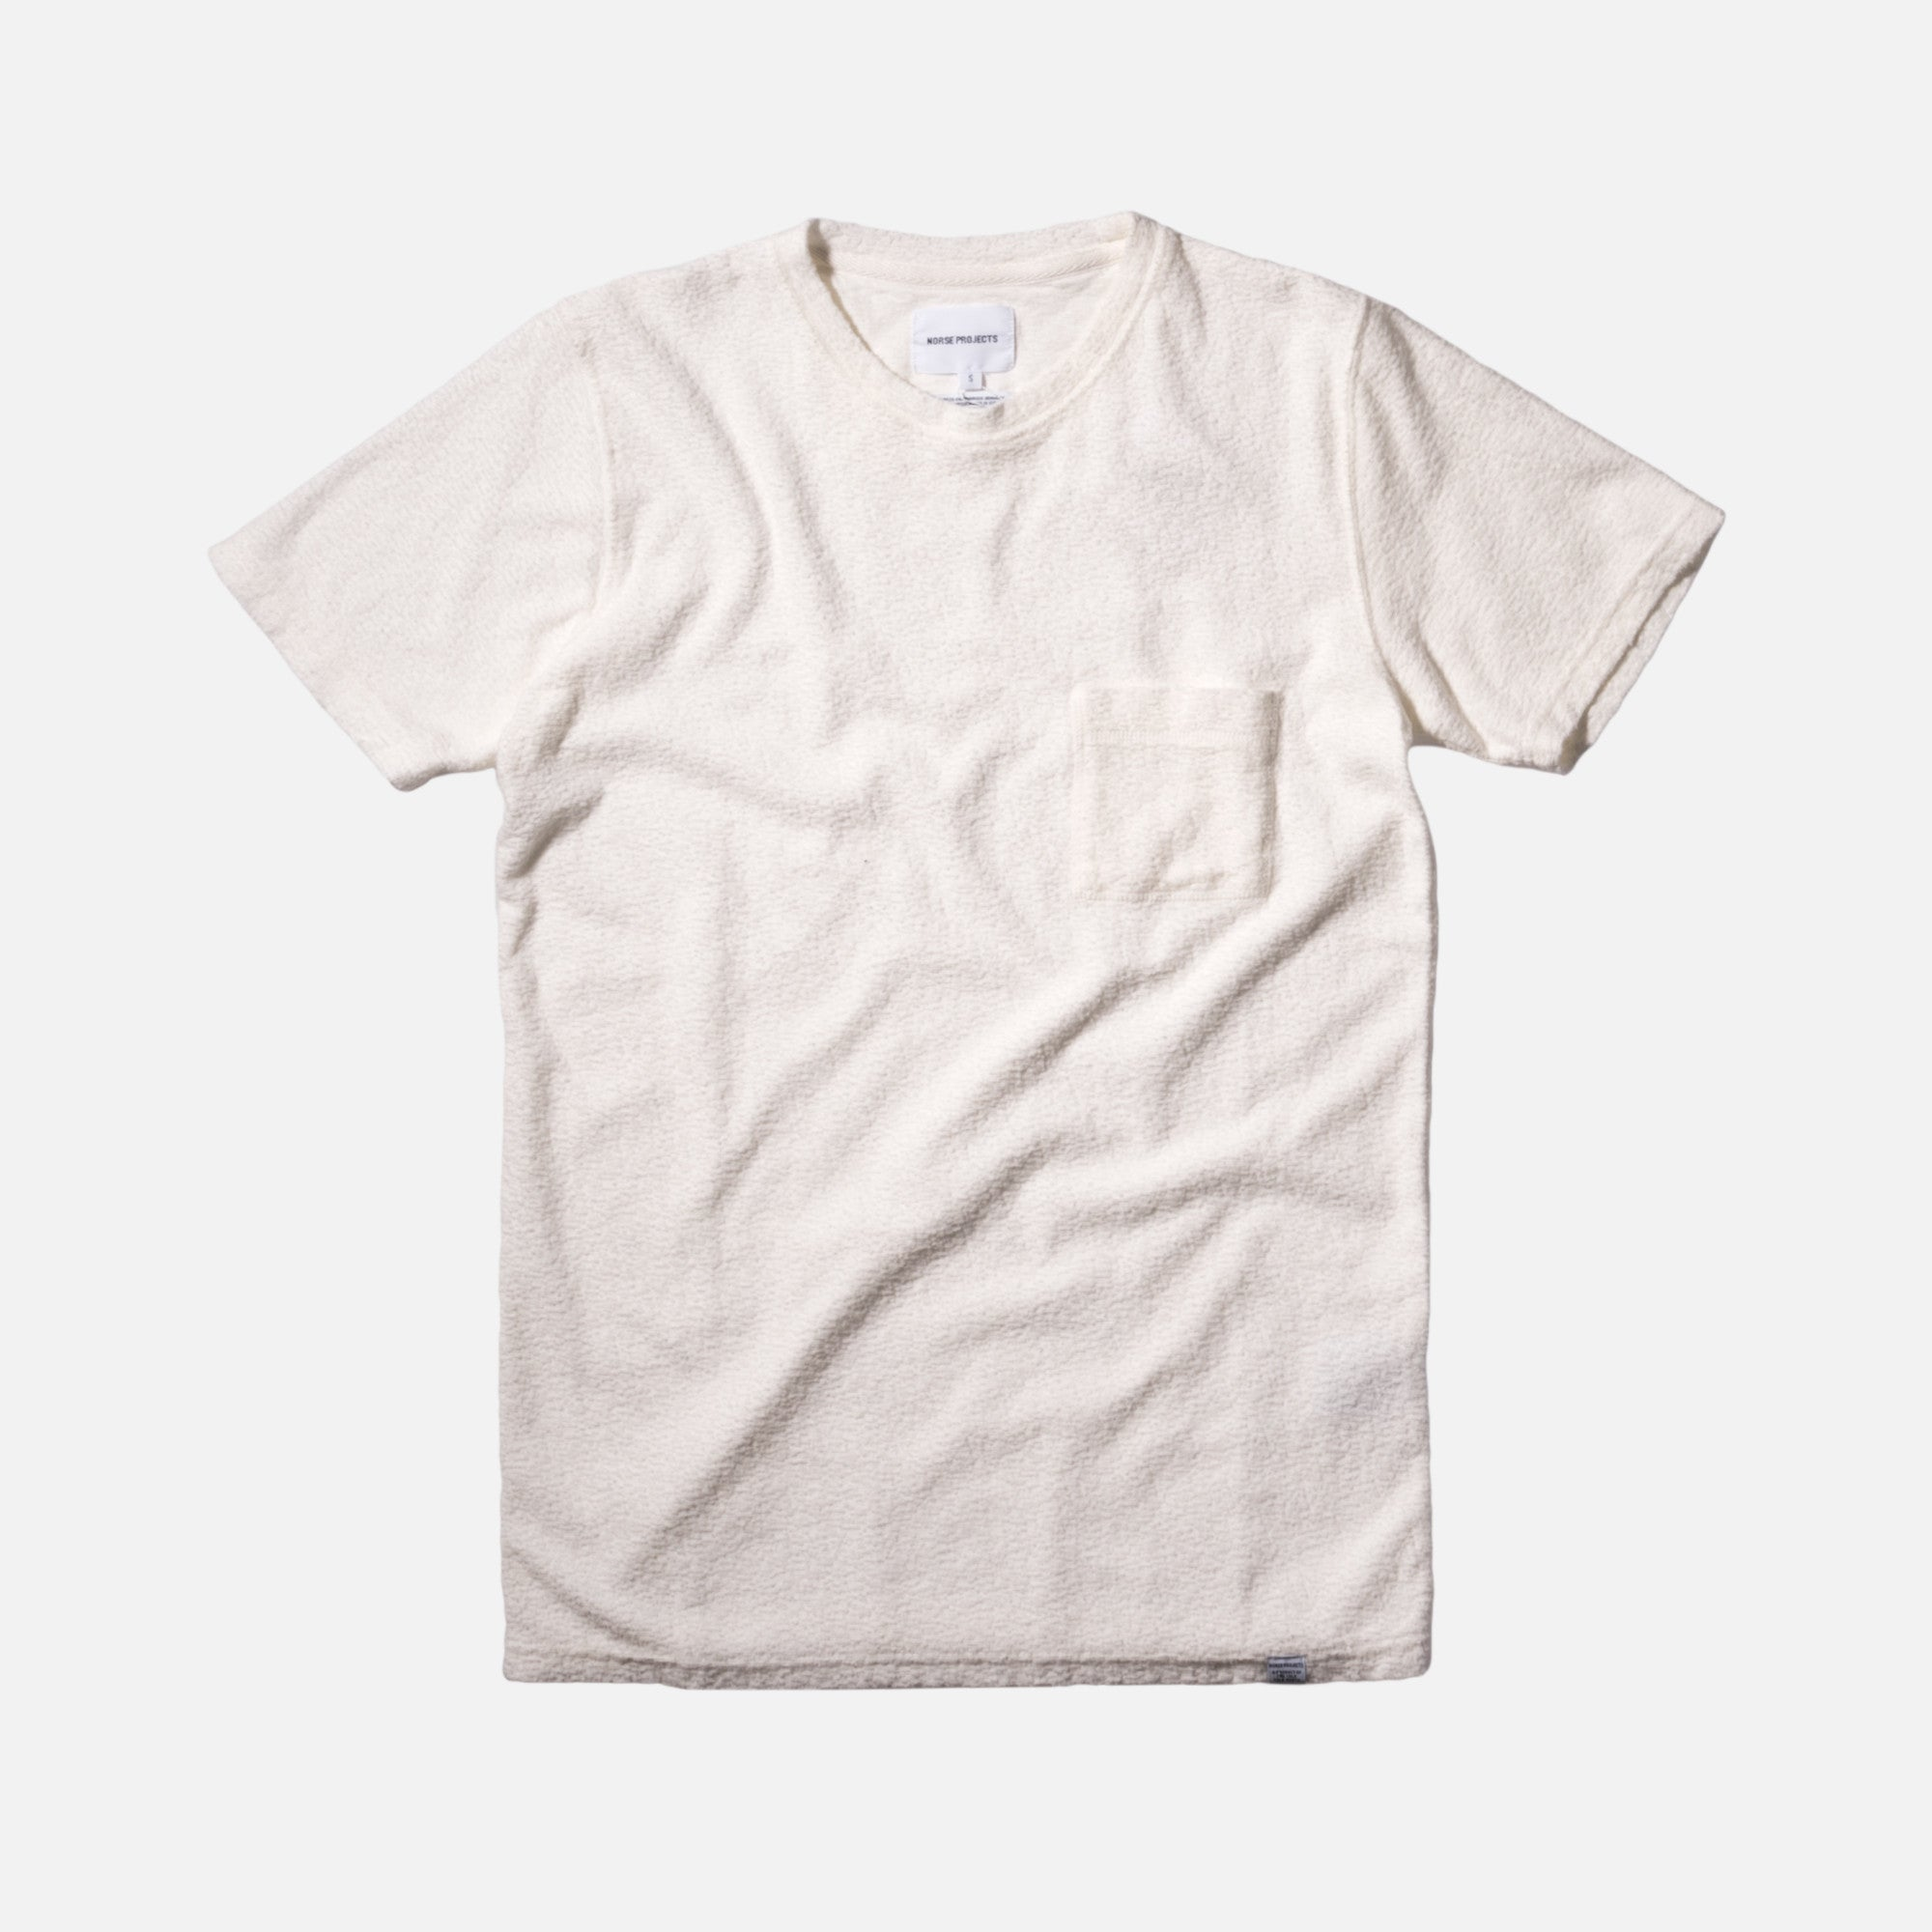 Norse Projects Niels Japanese Pocket Tee - White